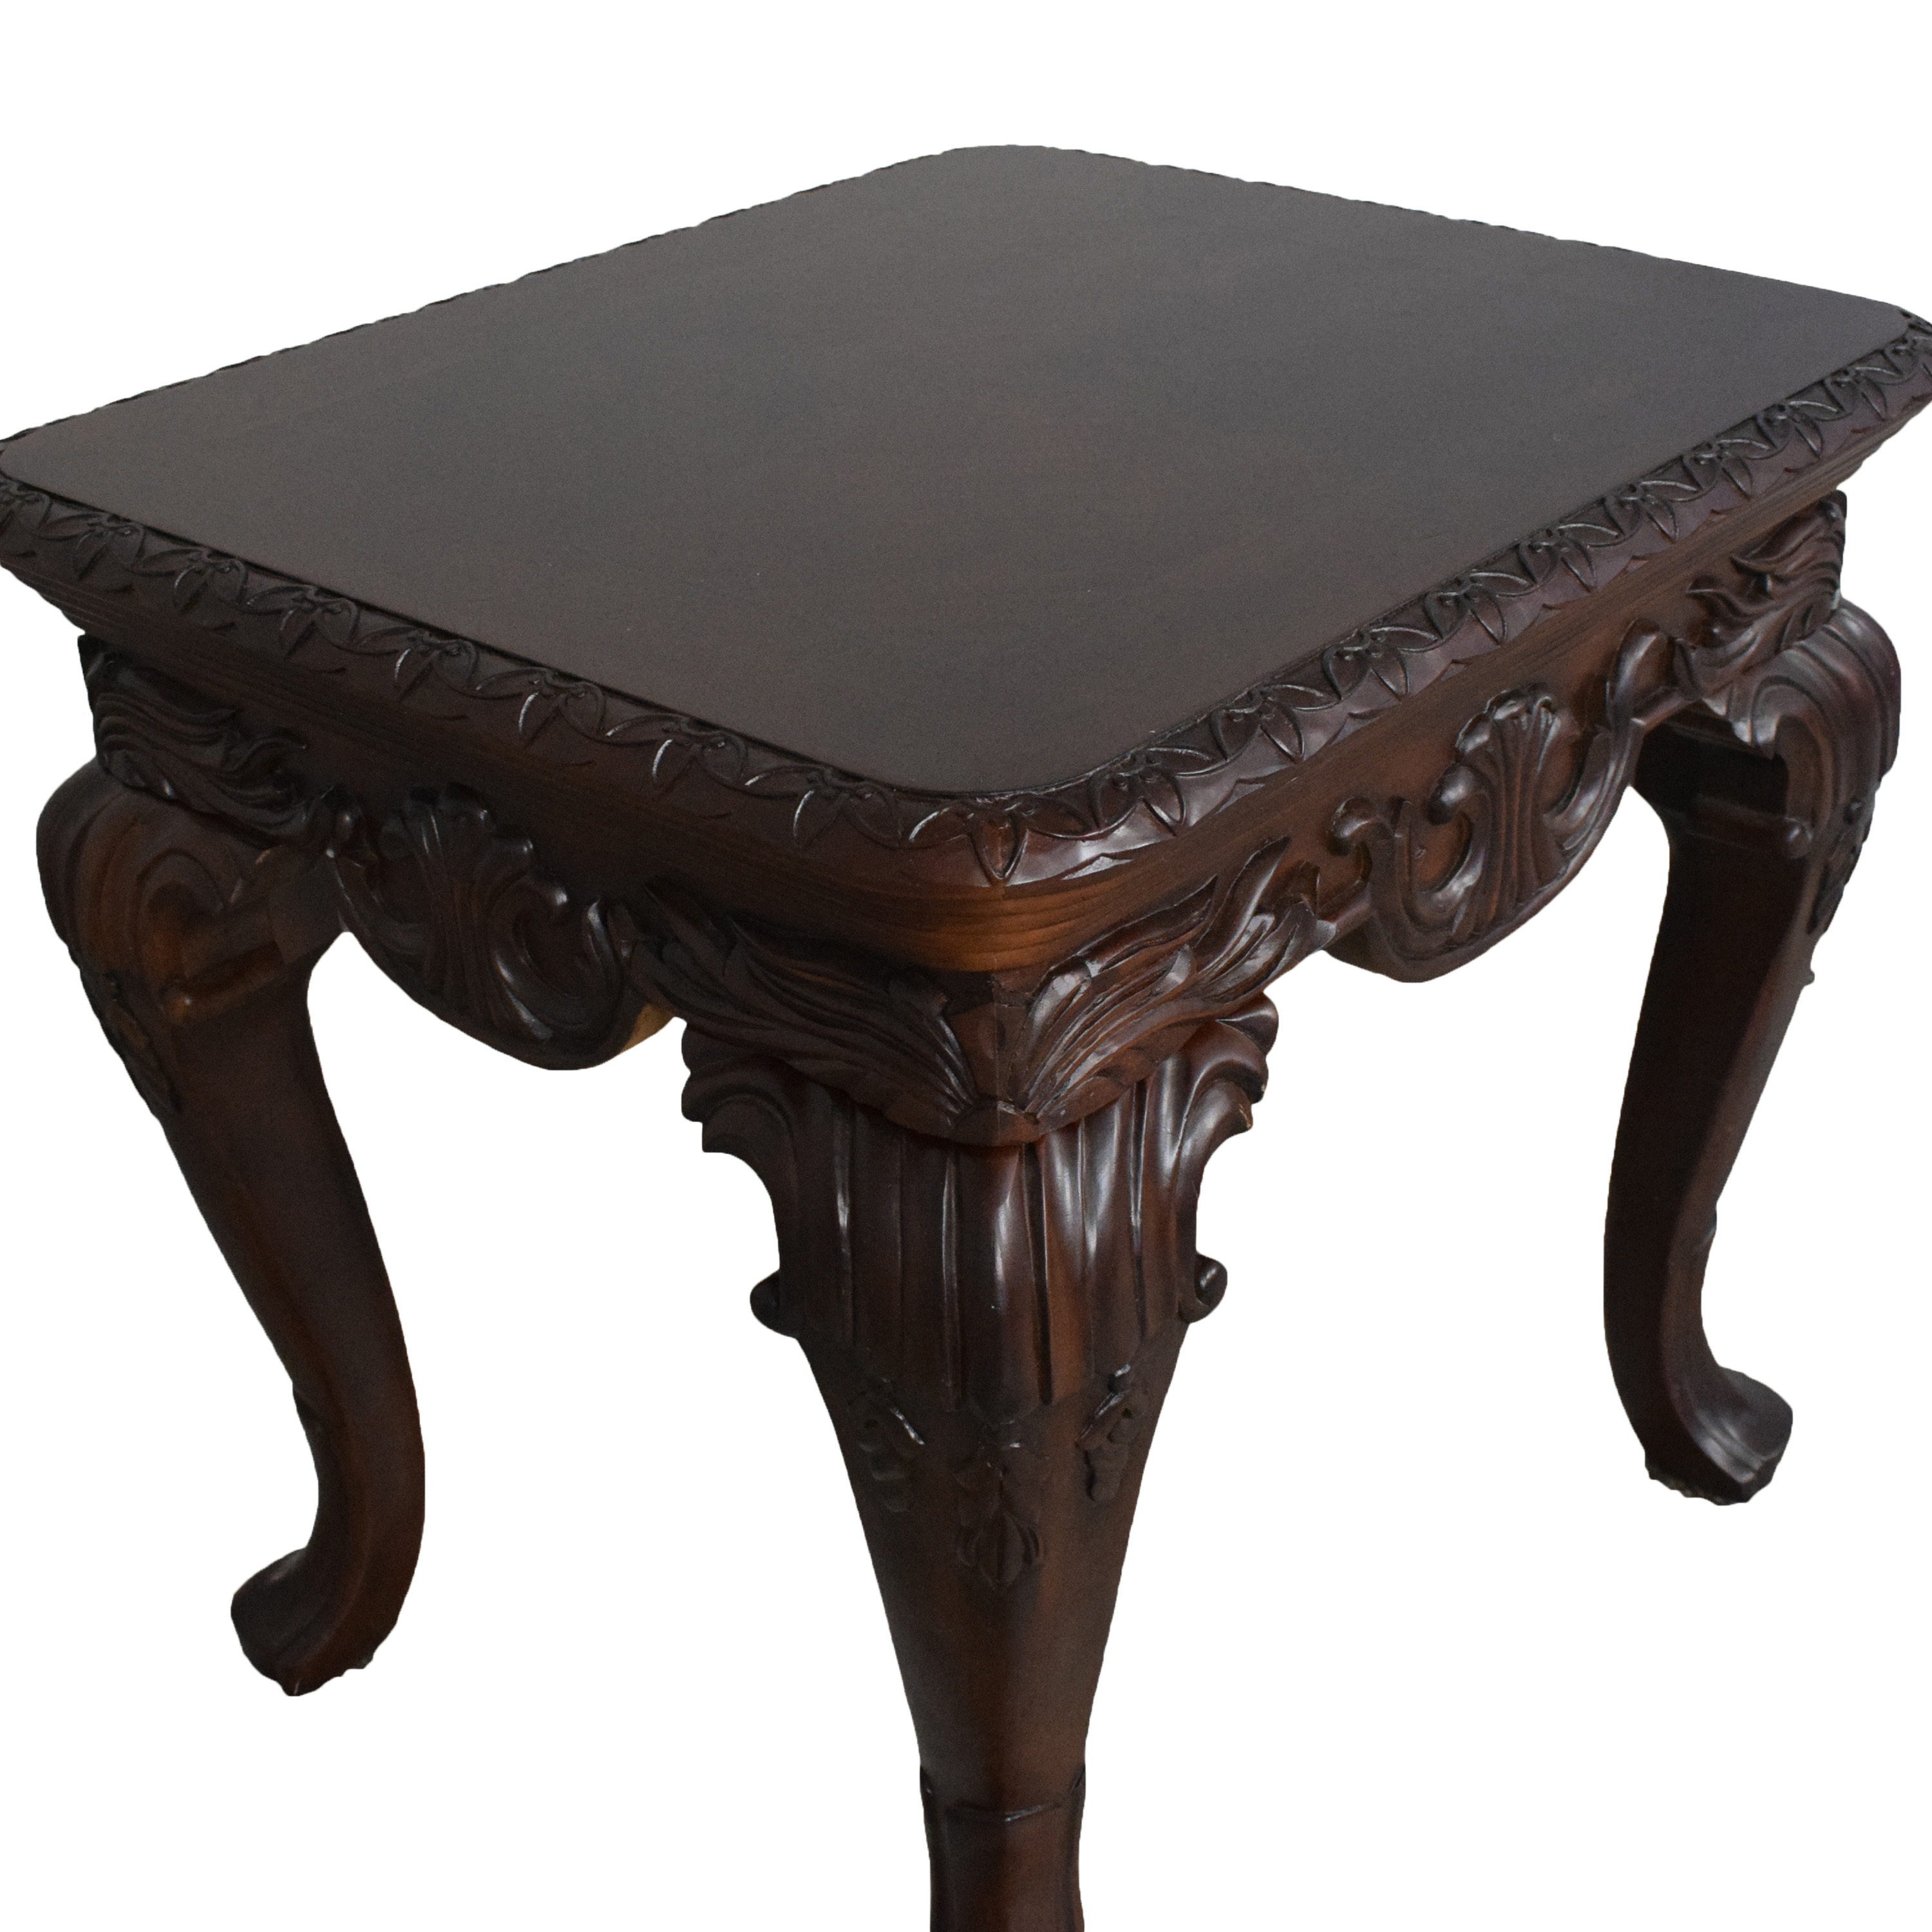 Thomasville Thomasville Carved Side Table brown